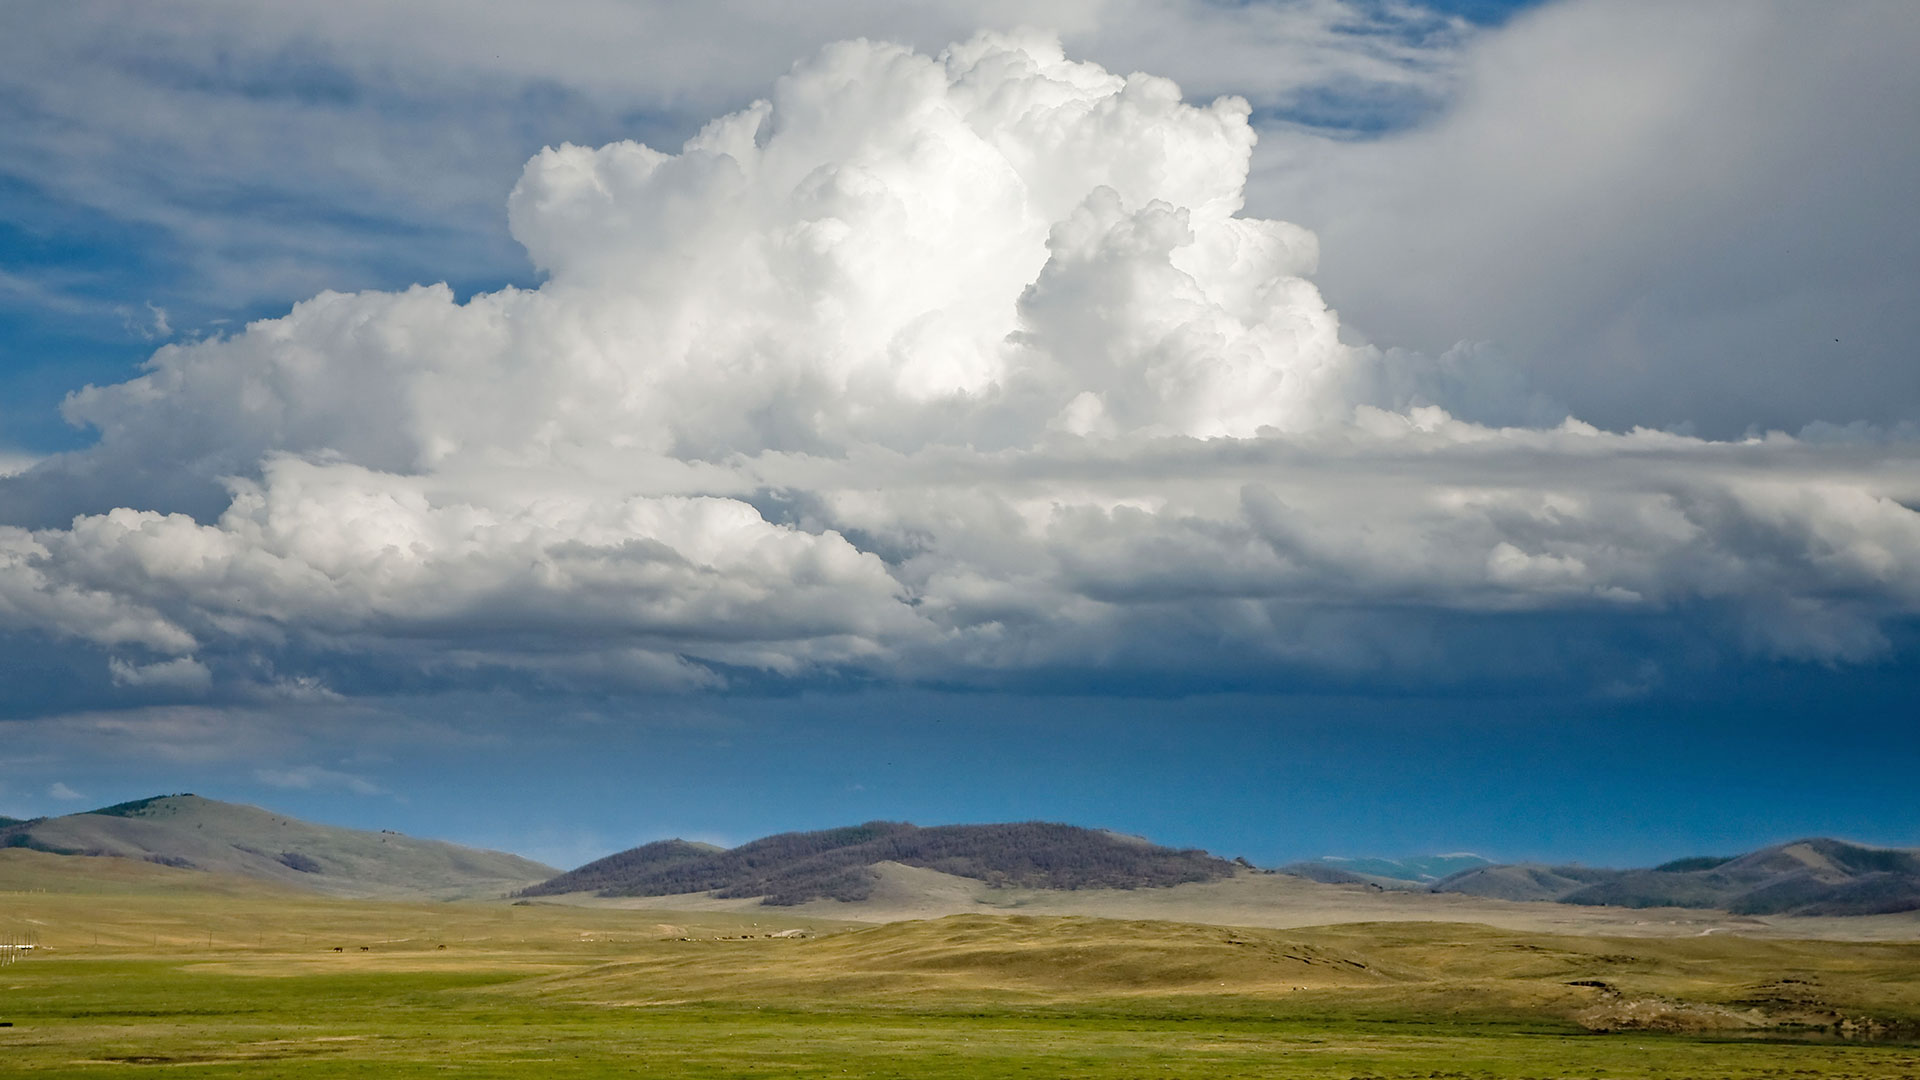 Clouds over Jargalant Mountain in western Mongolia